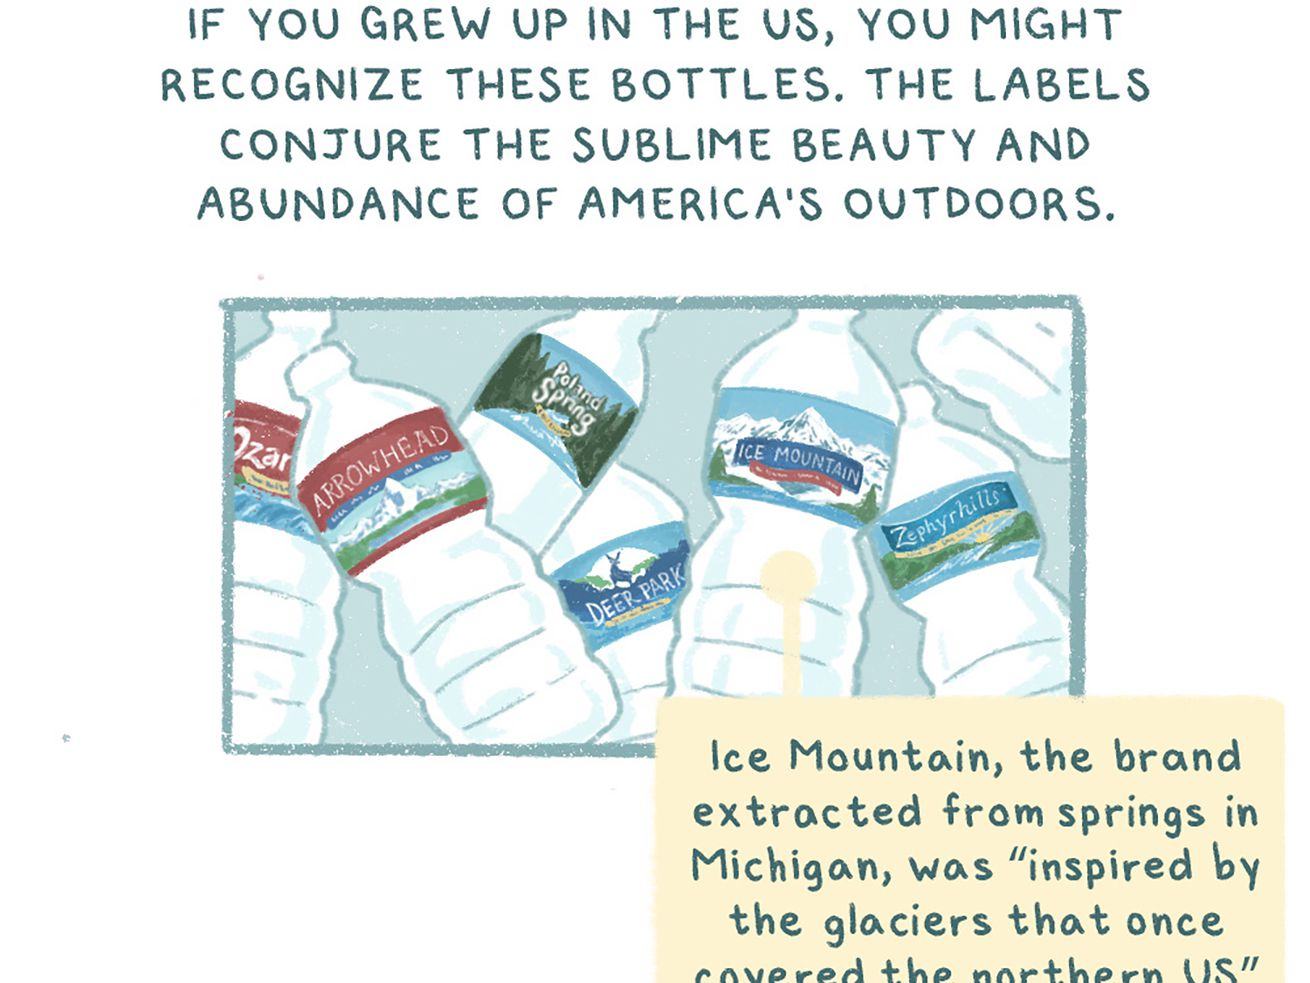 """Text: """"If you grew up in the US, you might recognize these bottles. The labels conjure the sublime beauty and abundance of America's outdoors."""" Drawing of bottled water with a bubble on one that reads: """"Ice Mountain, the brand extracted from springs in Michigan, was 'inspired by the glaciers that once covered the northern US'"""""""